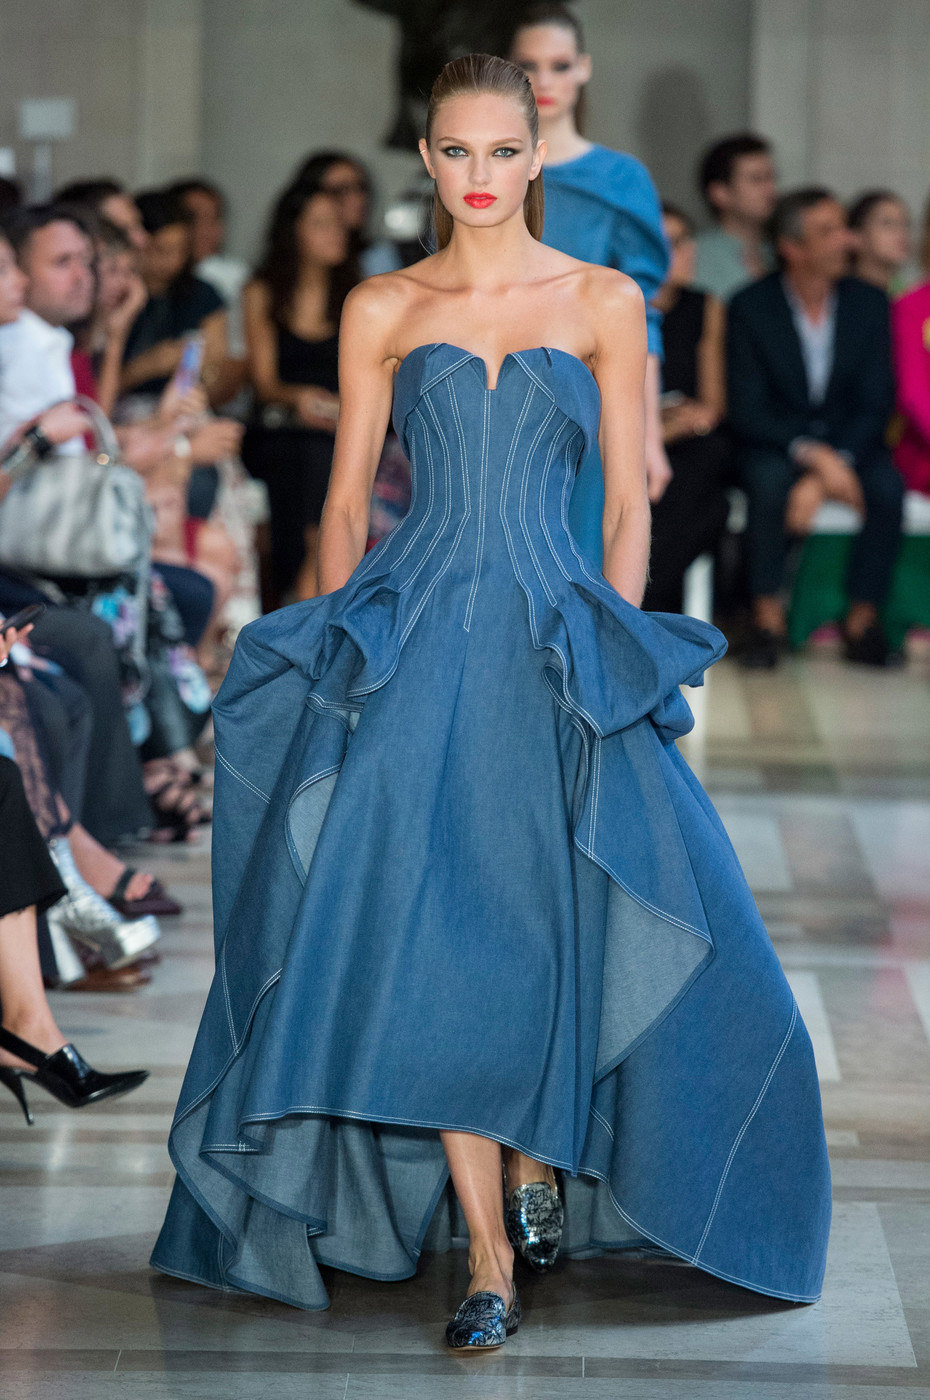 Carolina-Herrera-Spring-2017-Collection-NYFW-New-York-Fashion-Week-Runway-Looks-Tom-Lorenzo-Site-1.jpg